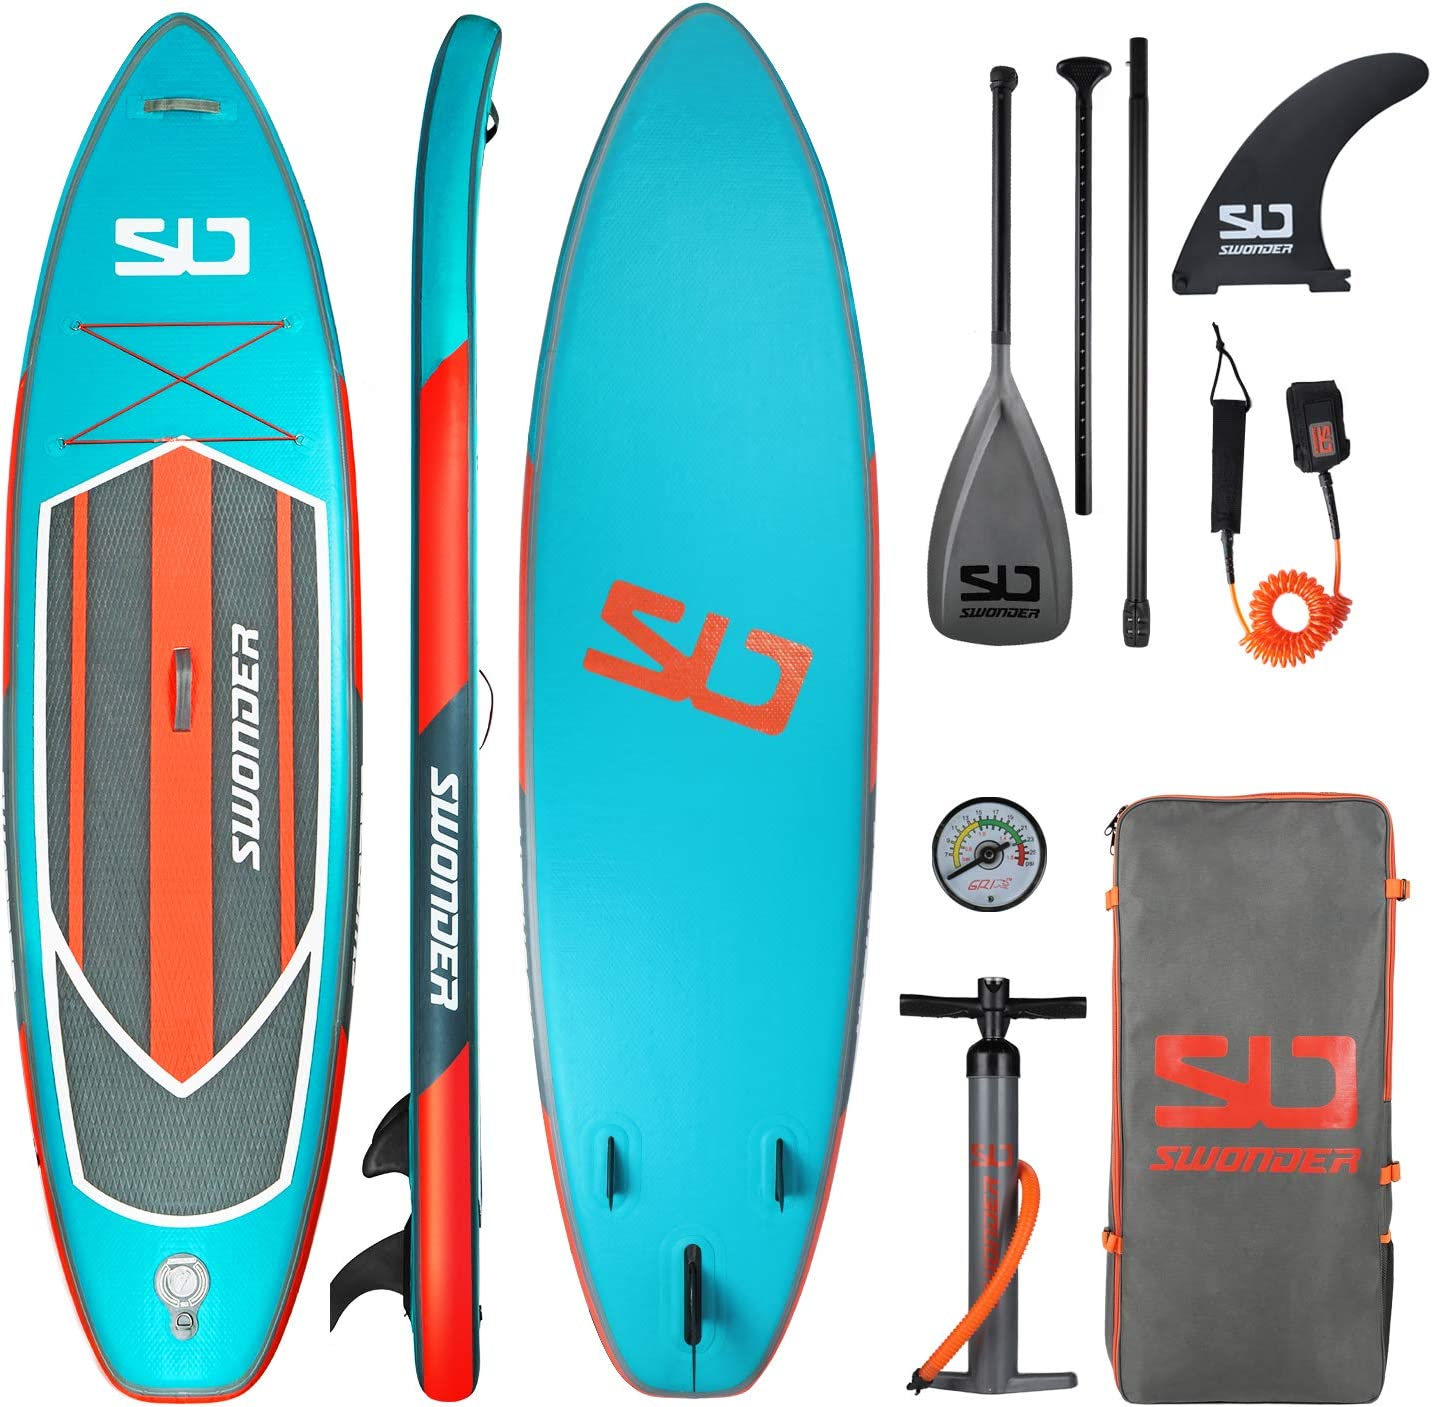 Swonder Premium 11'6″ Inflatable Stand Up Paddle Board with Adjustable Paddle, Backpack, Leash, Pump